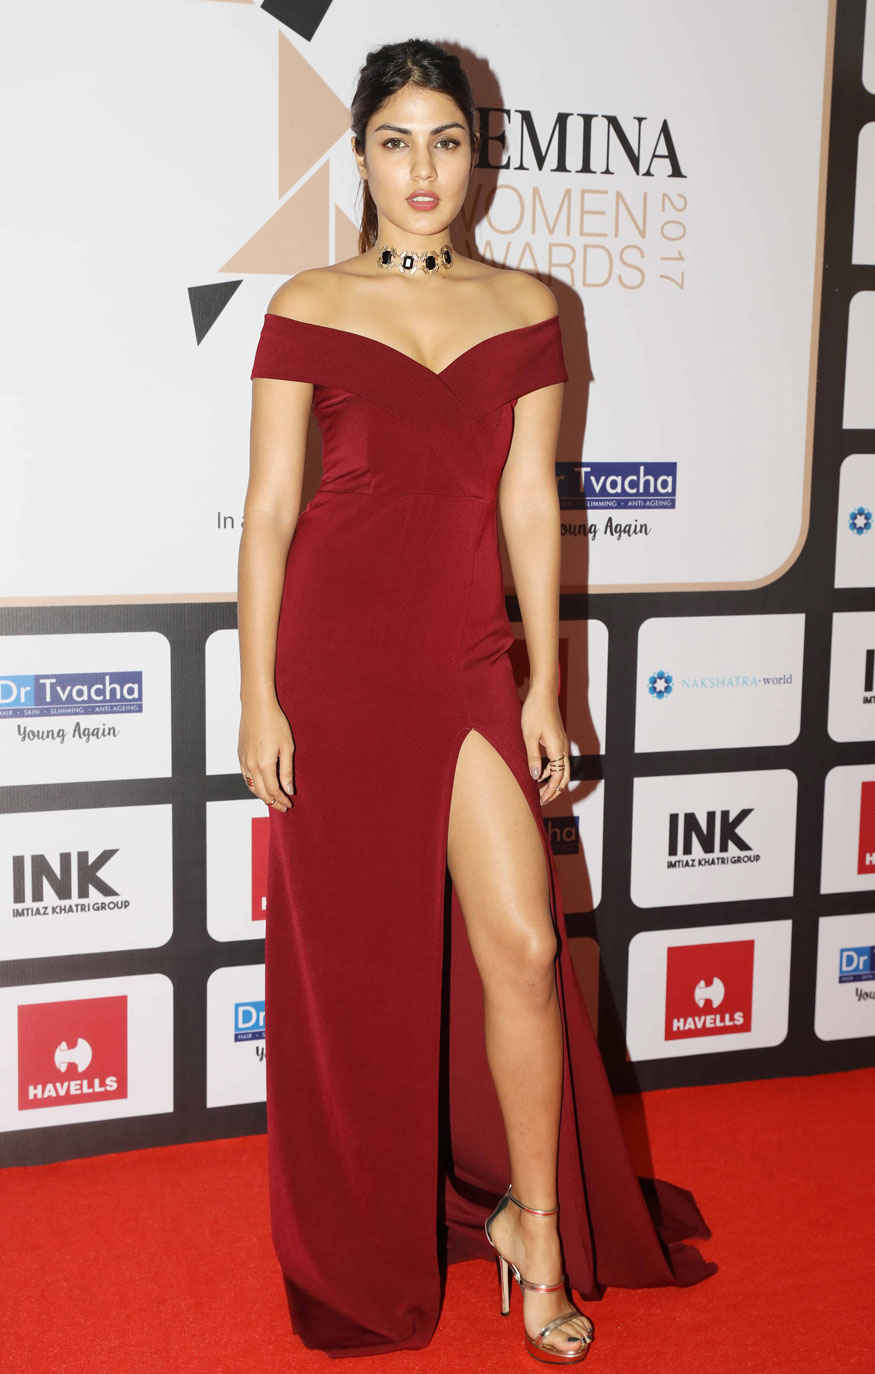 Rhea Chakraborty Poses During Femina Women Awards 2017 Event